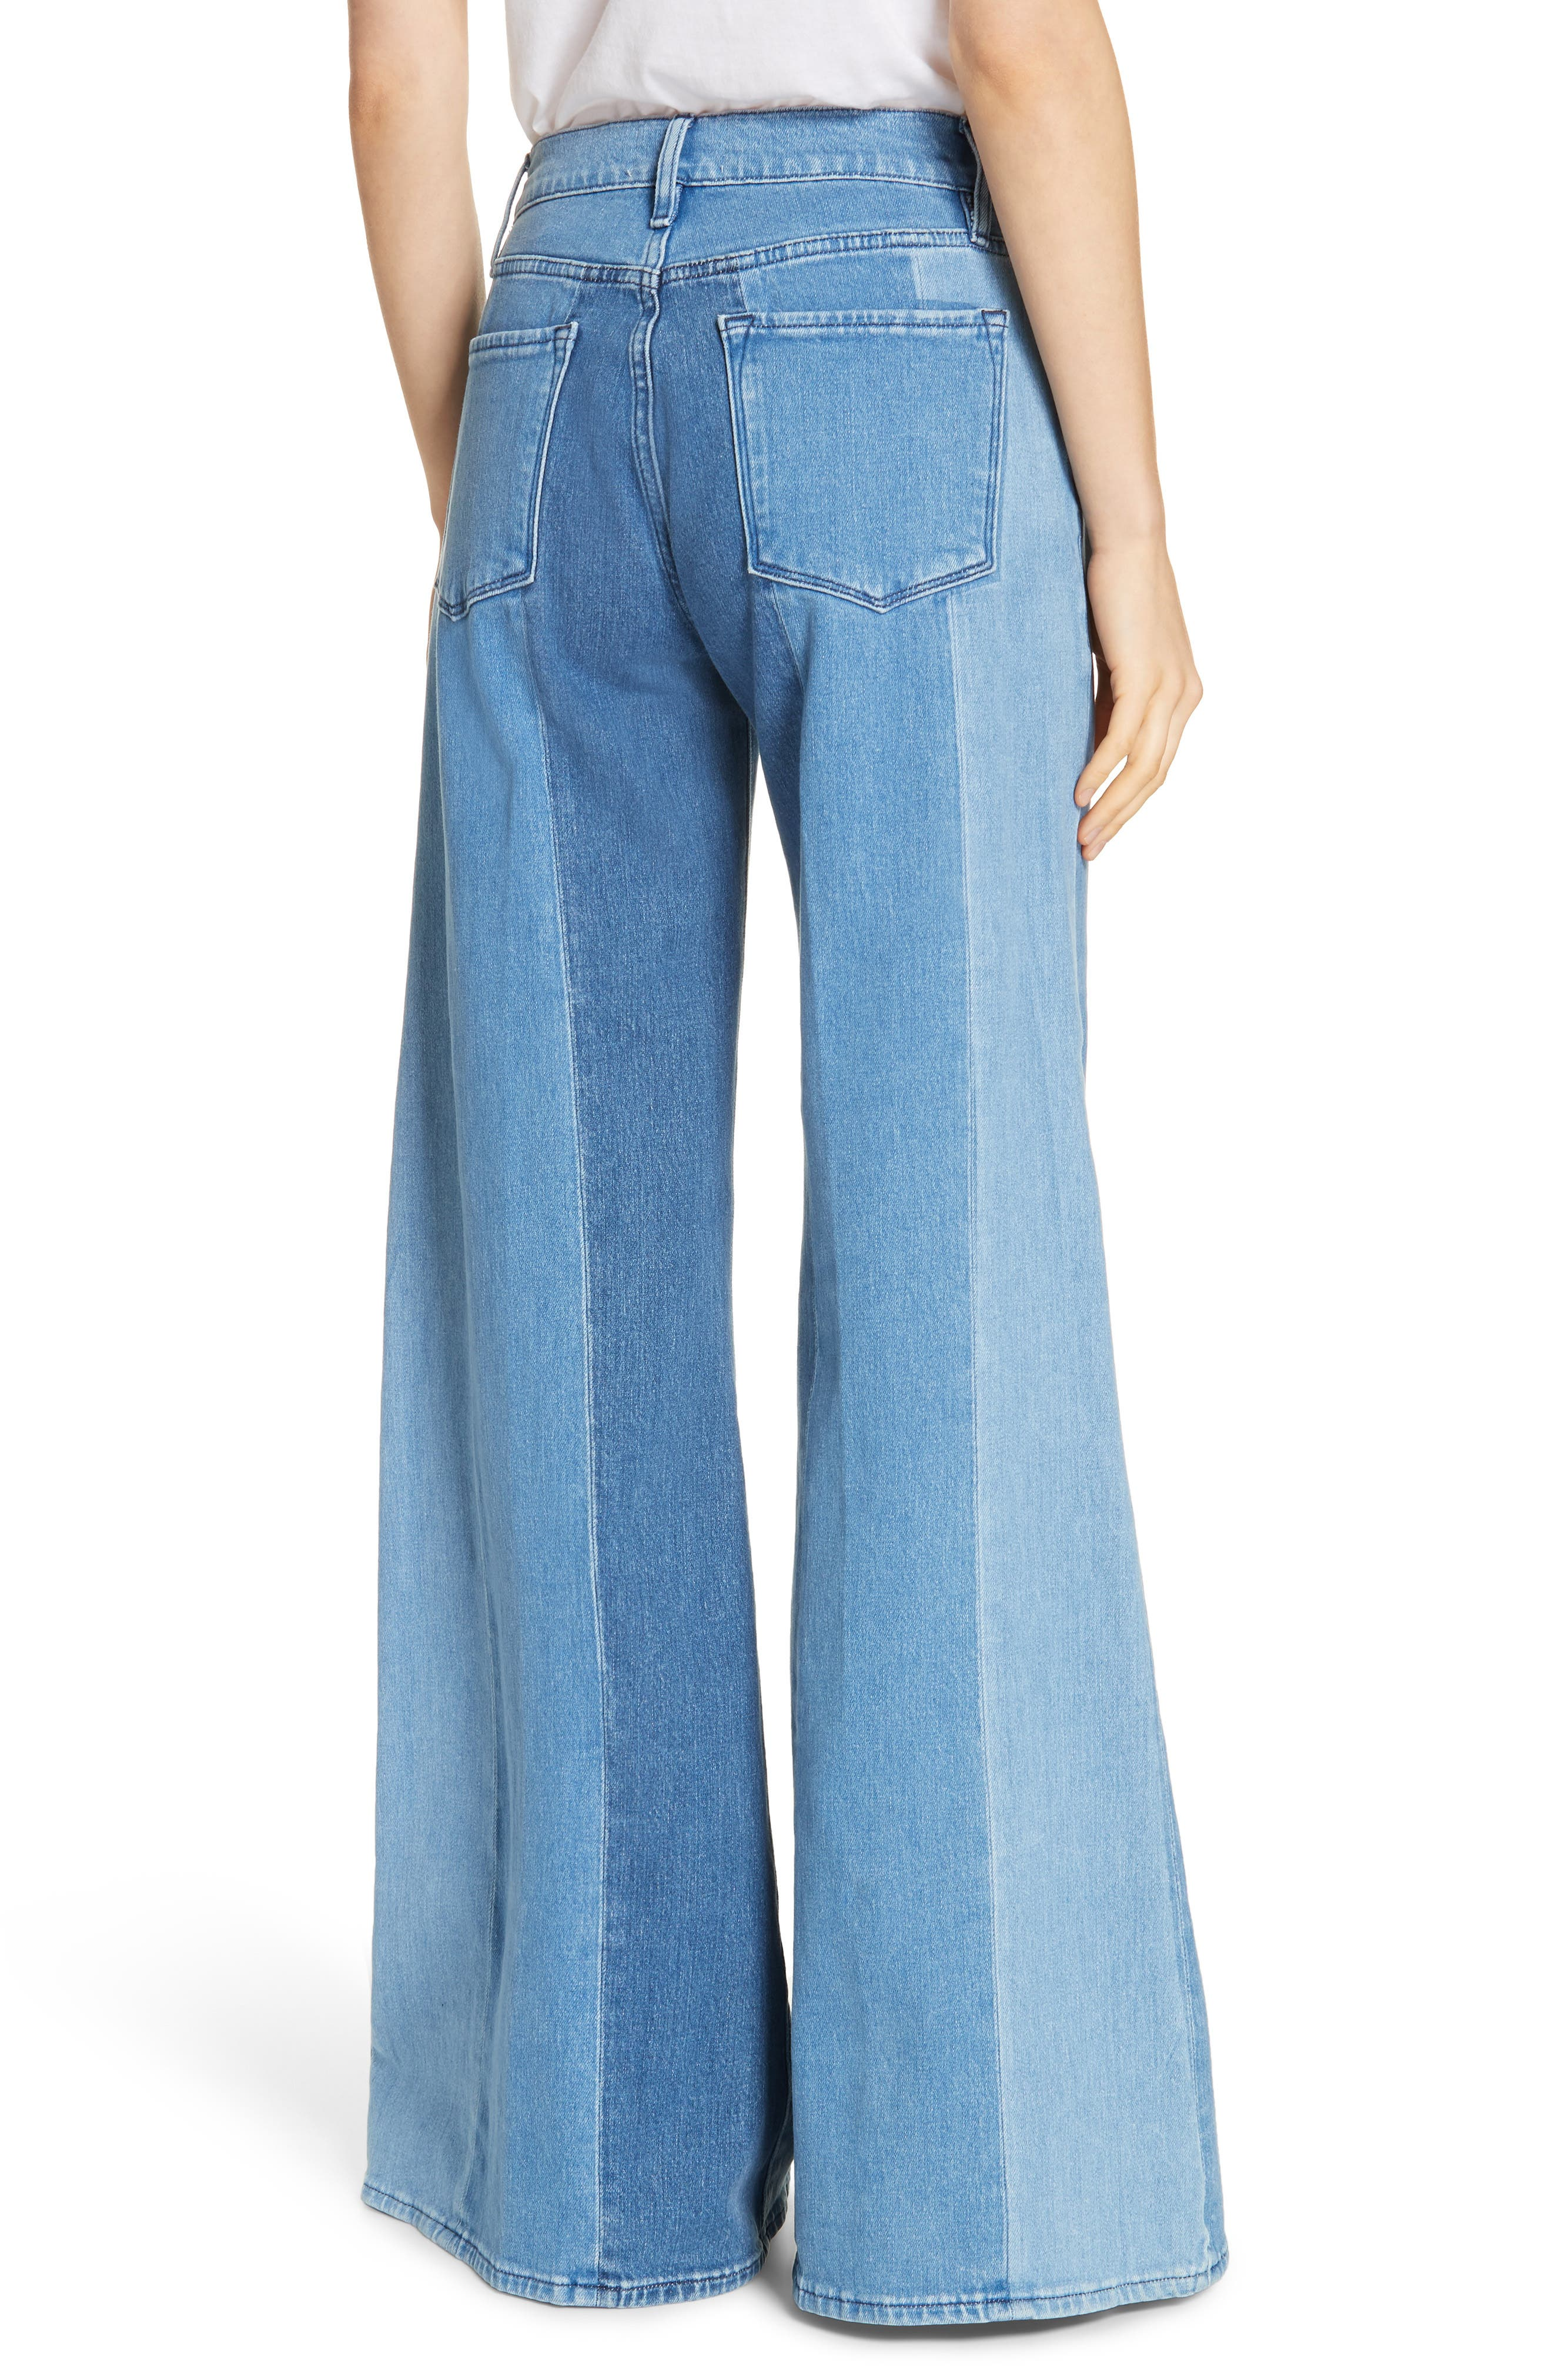 Le Palazzo Paneled Wide Leg Jeans,                             Alternate thumbnail 2, color,                             VINEYARD